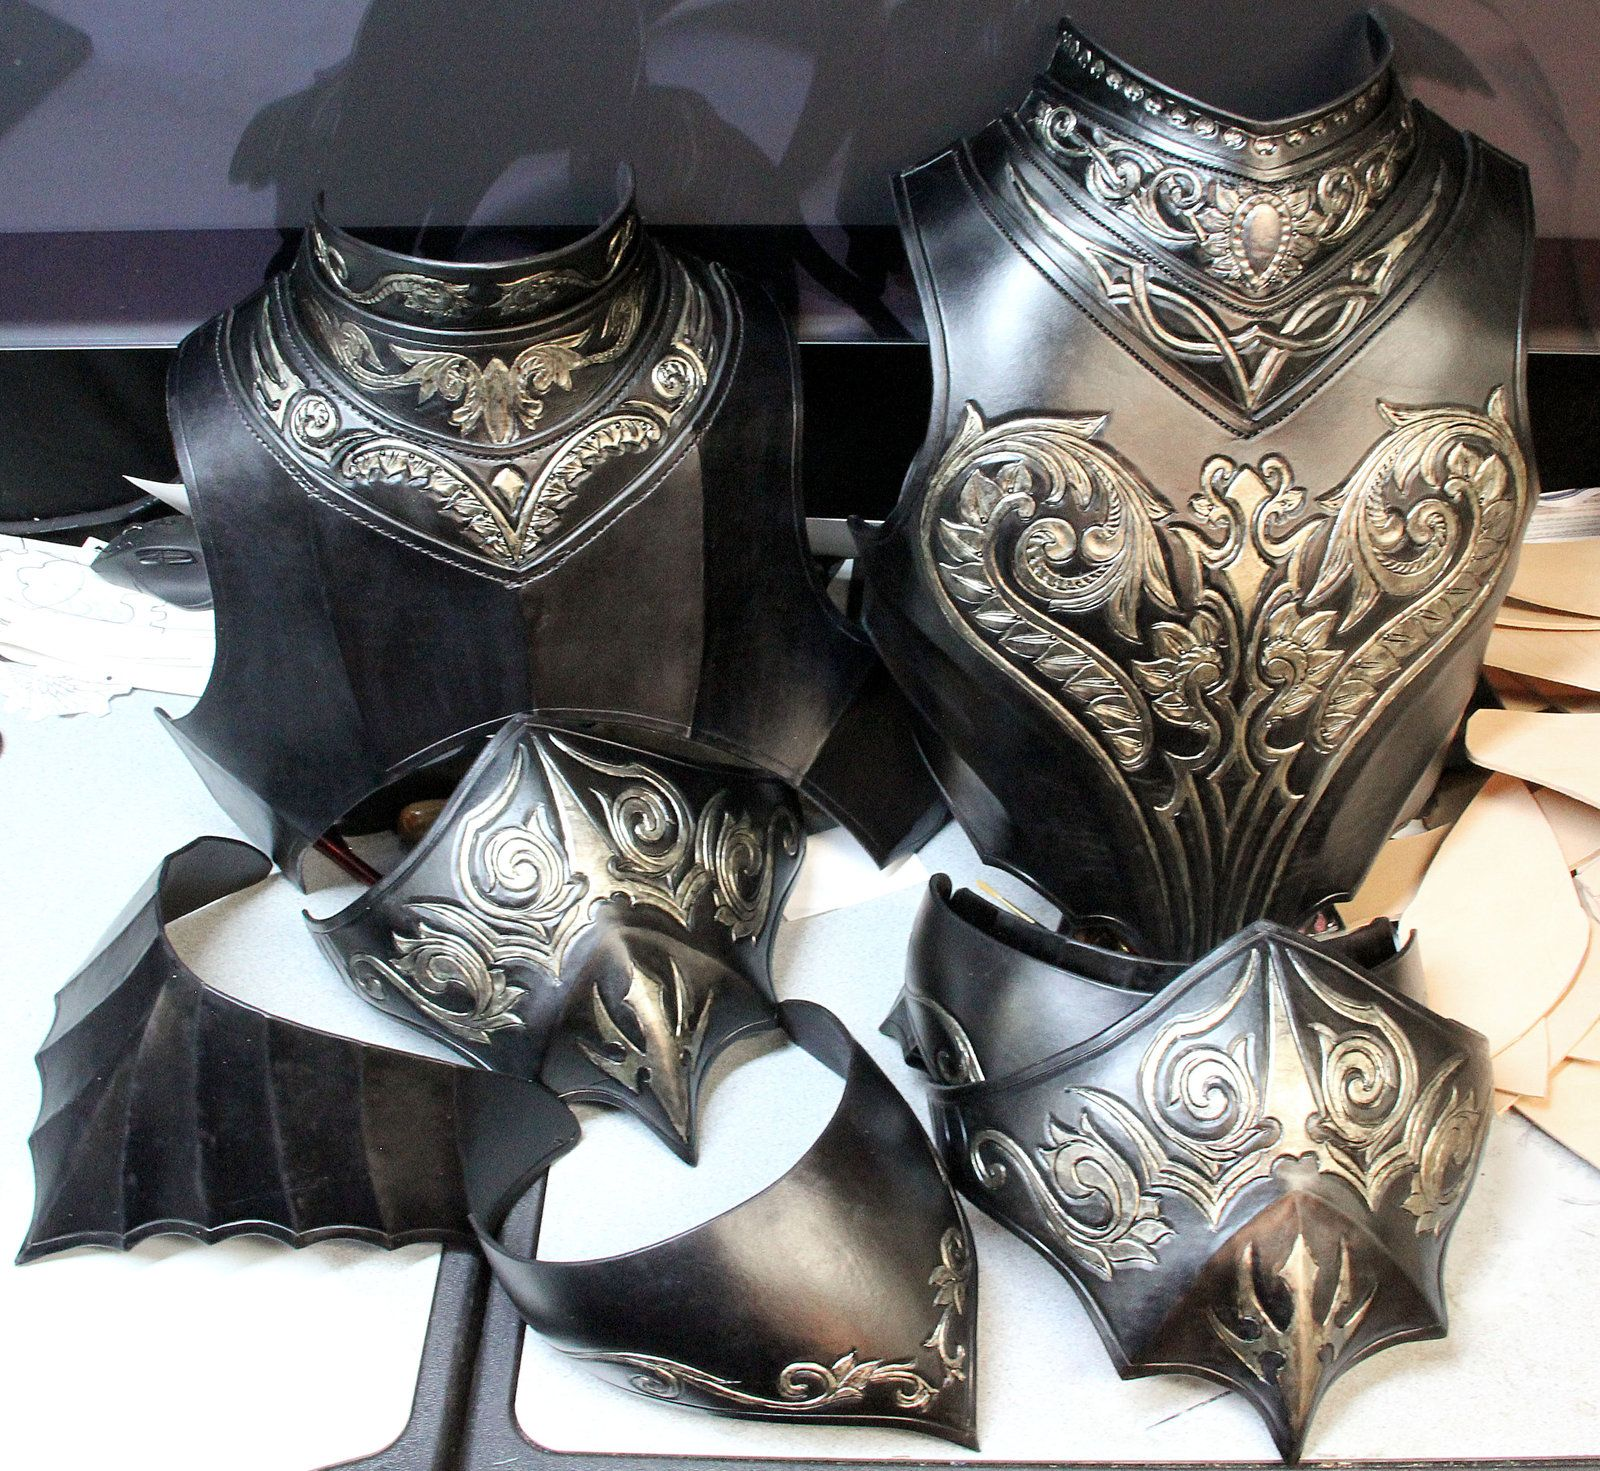 Black leather gloves dark souls - Part Of A Leather Armor Full Suit Inspired By Artorias From Dark Souls The